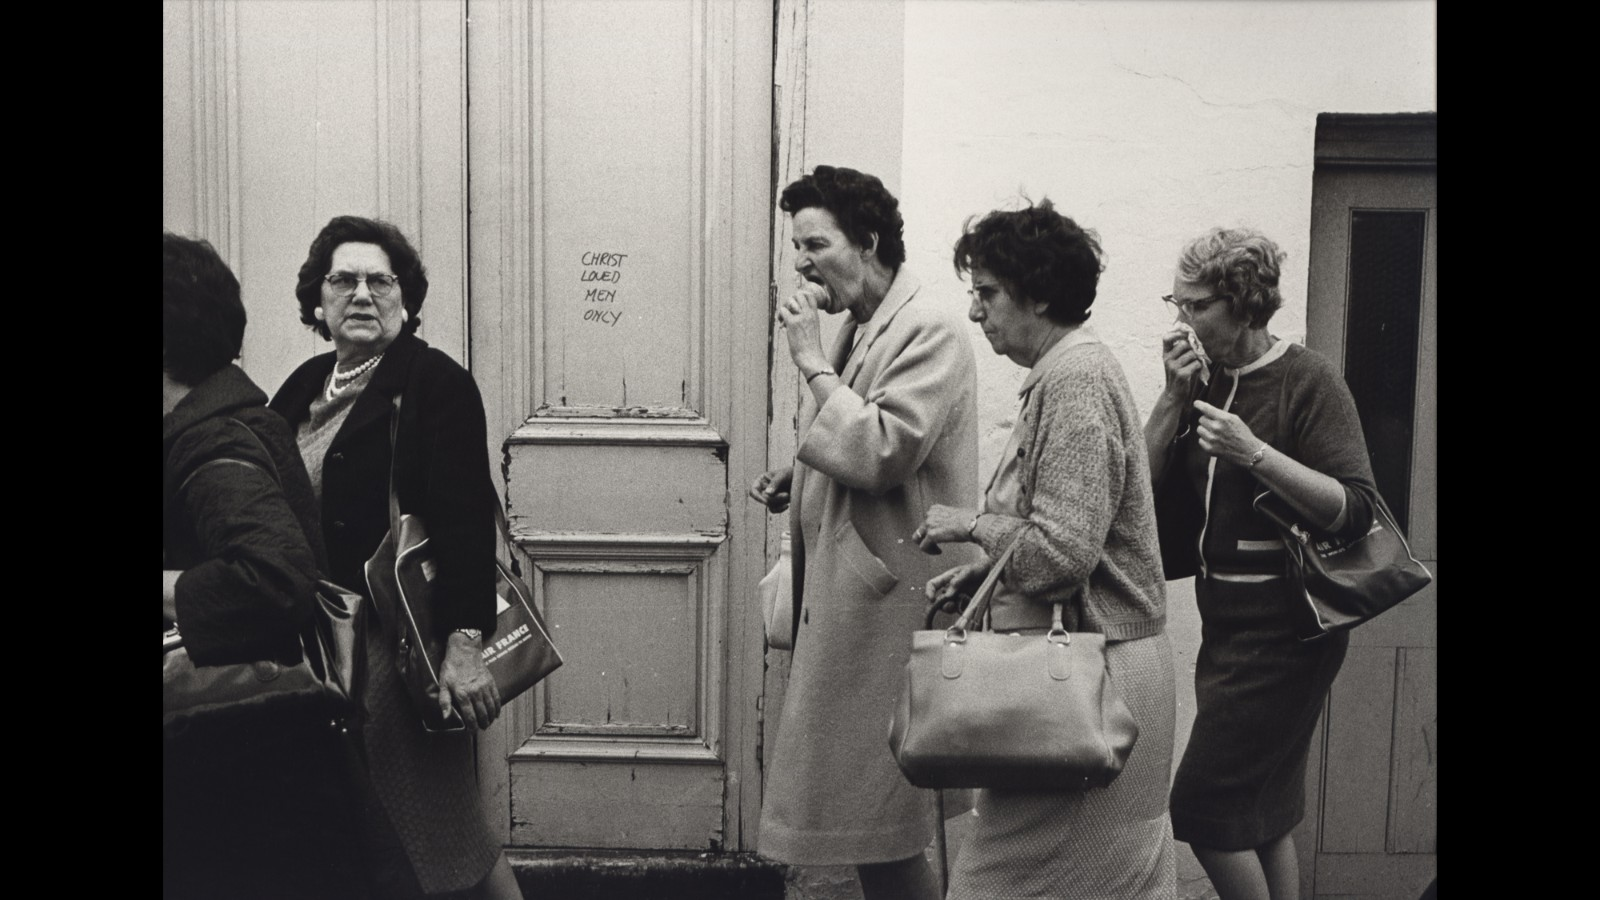 "This door in London read ""Christ loved men only"" in 1967. Jill Freedman/Steven Kasher Gallery"